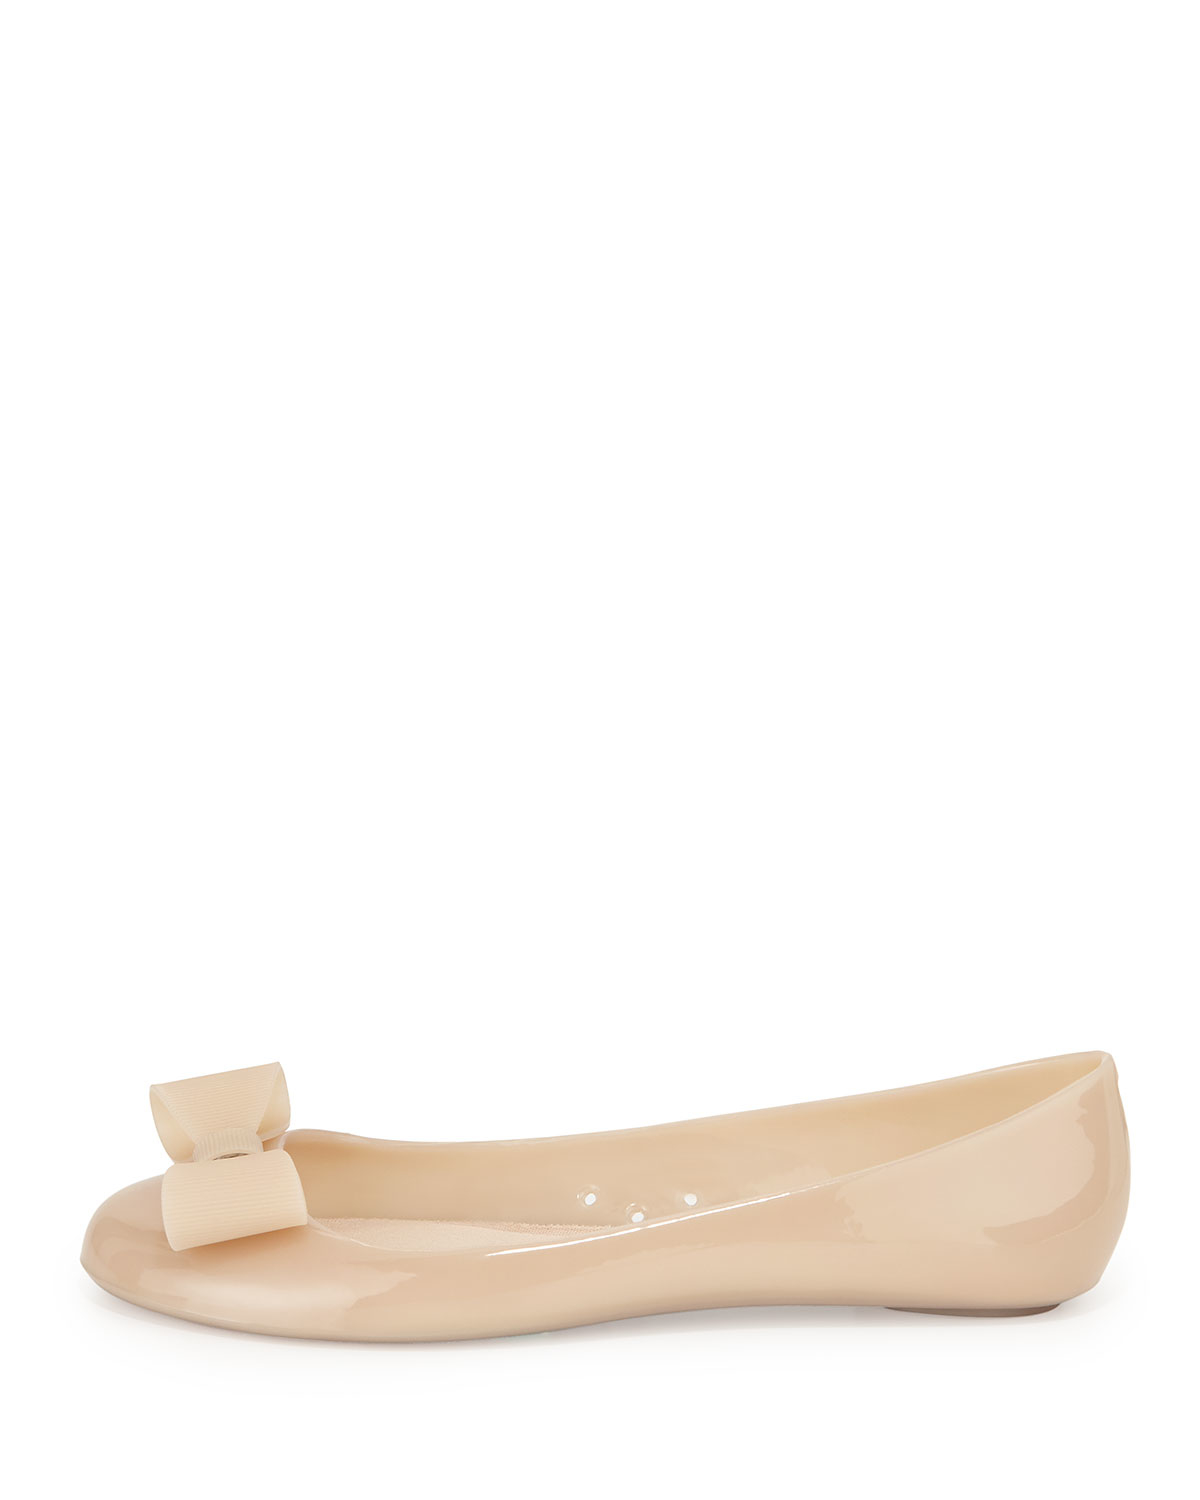 Kate spade new york jove bow jelly ballet flat in natural for Kate spade new york flats